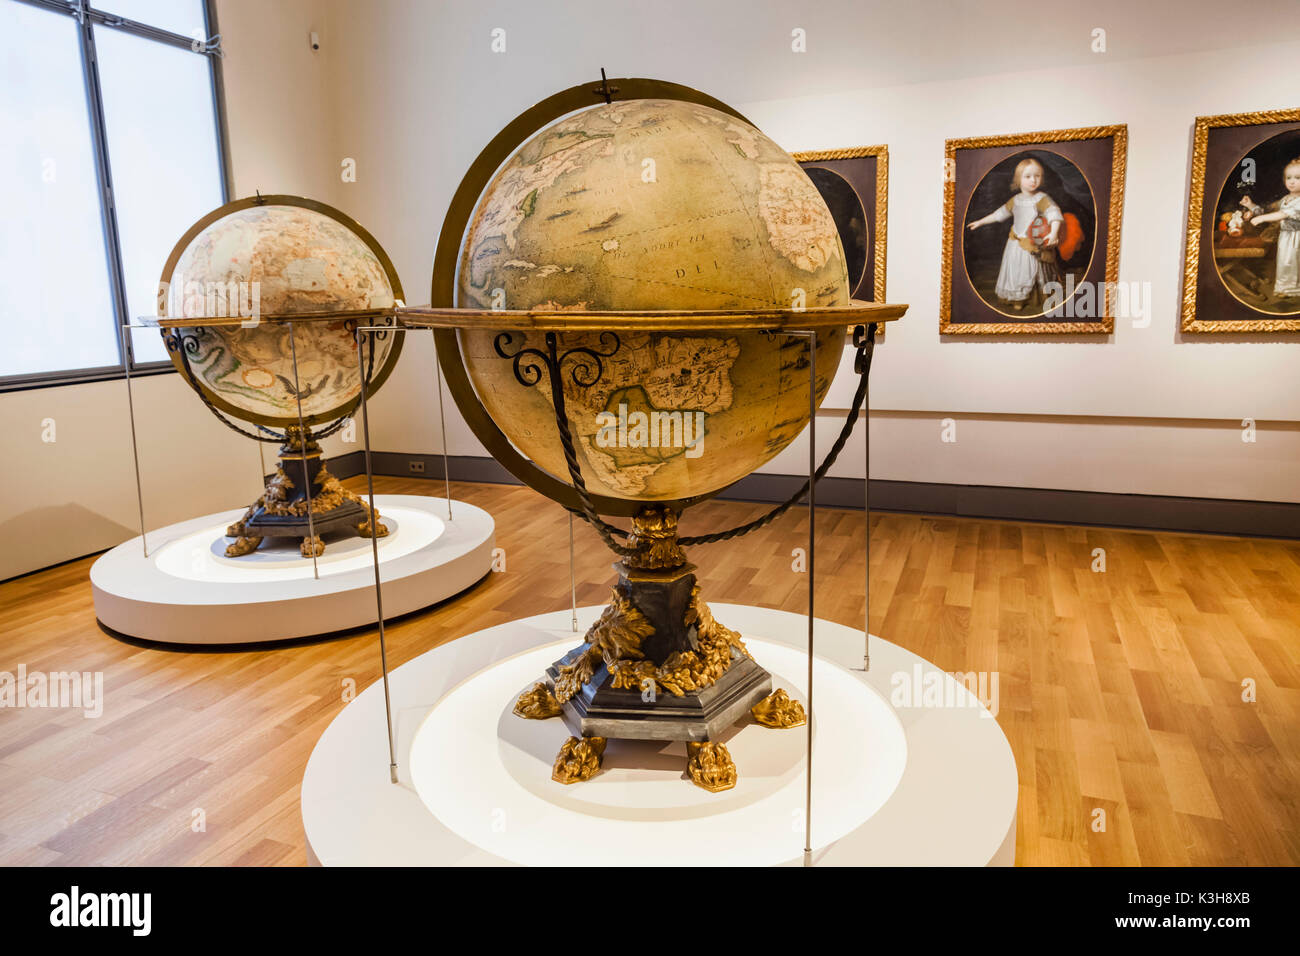 Germany, Bavaria, Munich, Bavarian National Museum, Terrestrial and Celestial Globes by Vincenzo Coronelli dated 1692 - Stock Image